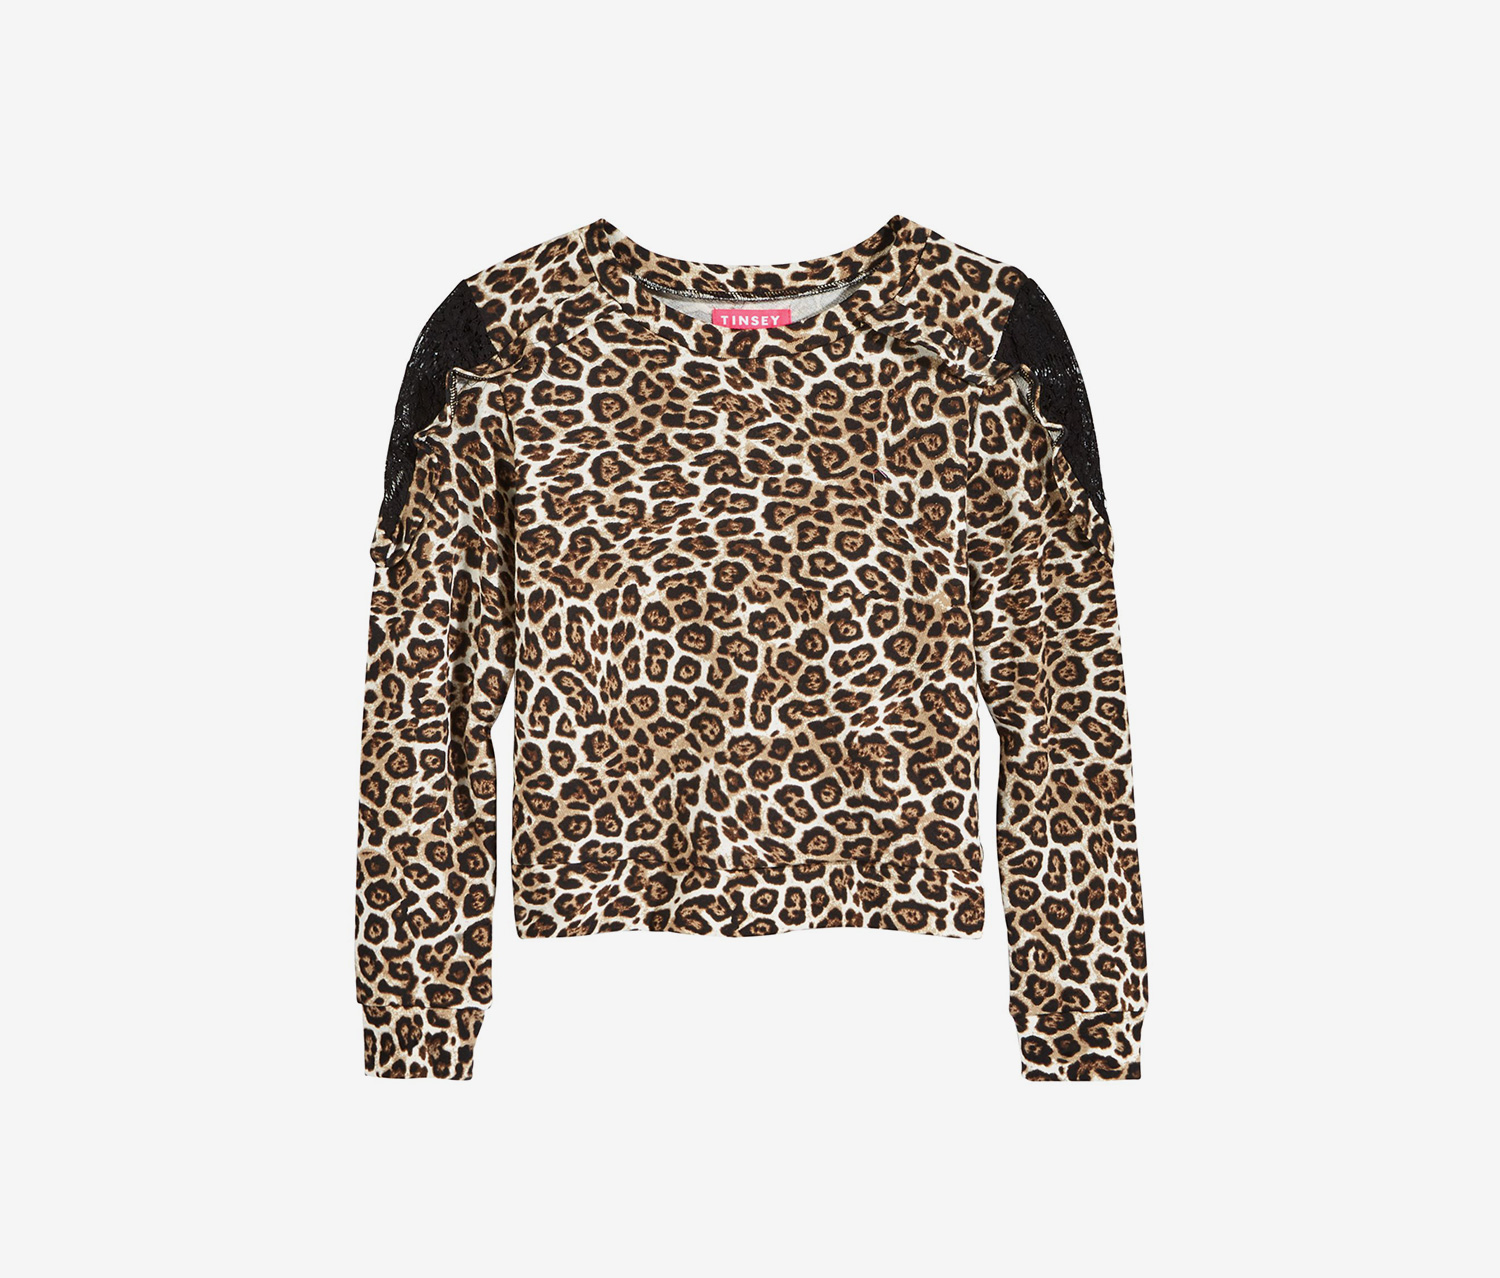 Lace-Trim Animal-Print T-Shirt, Leopard